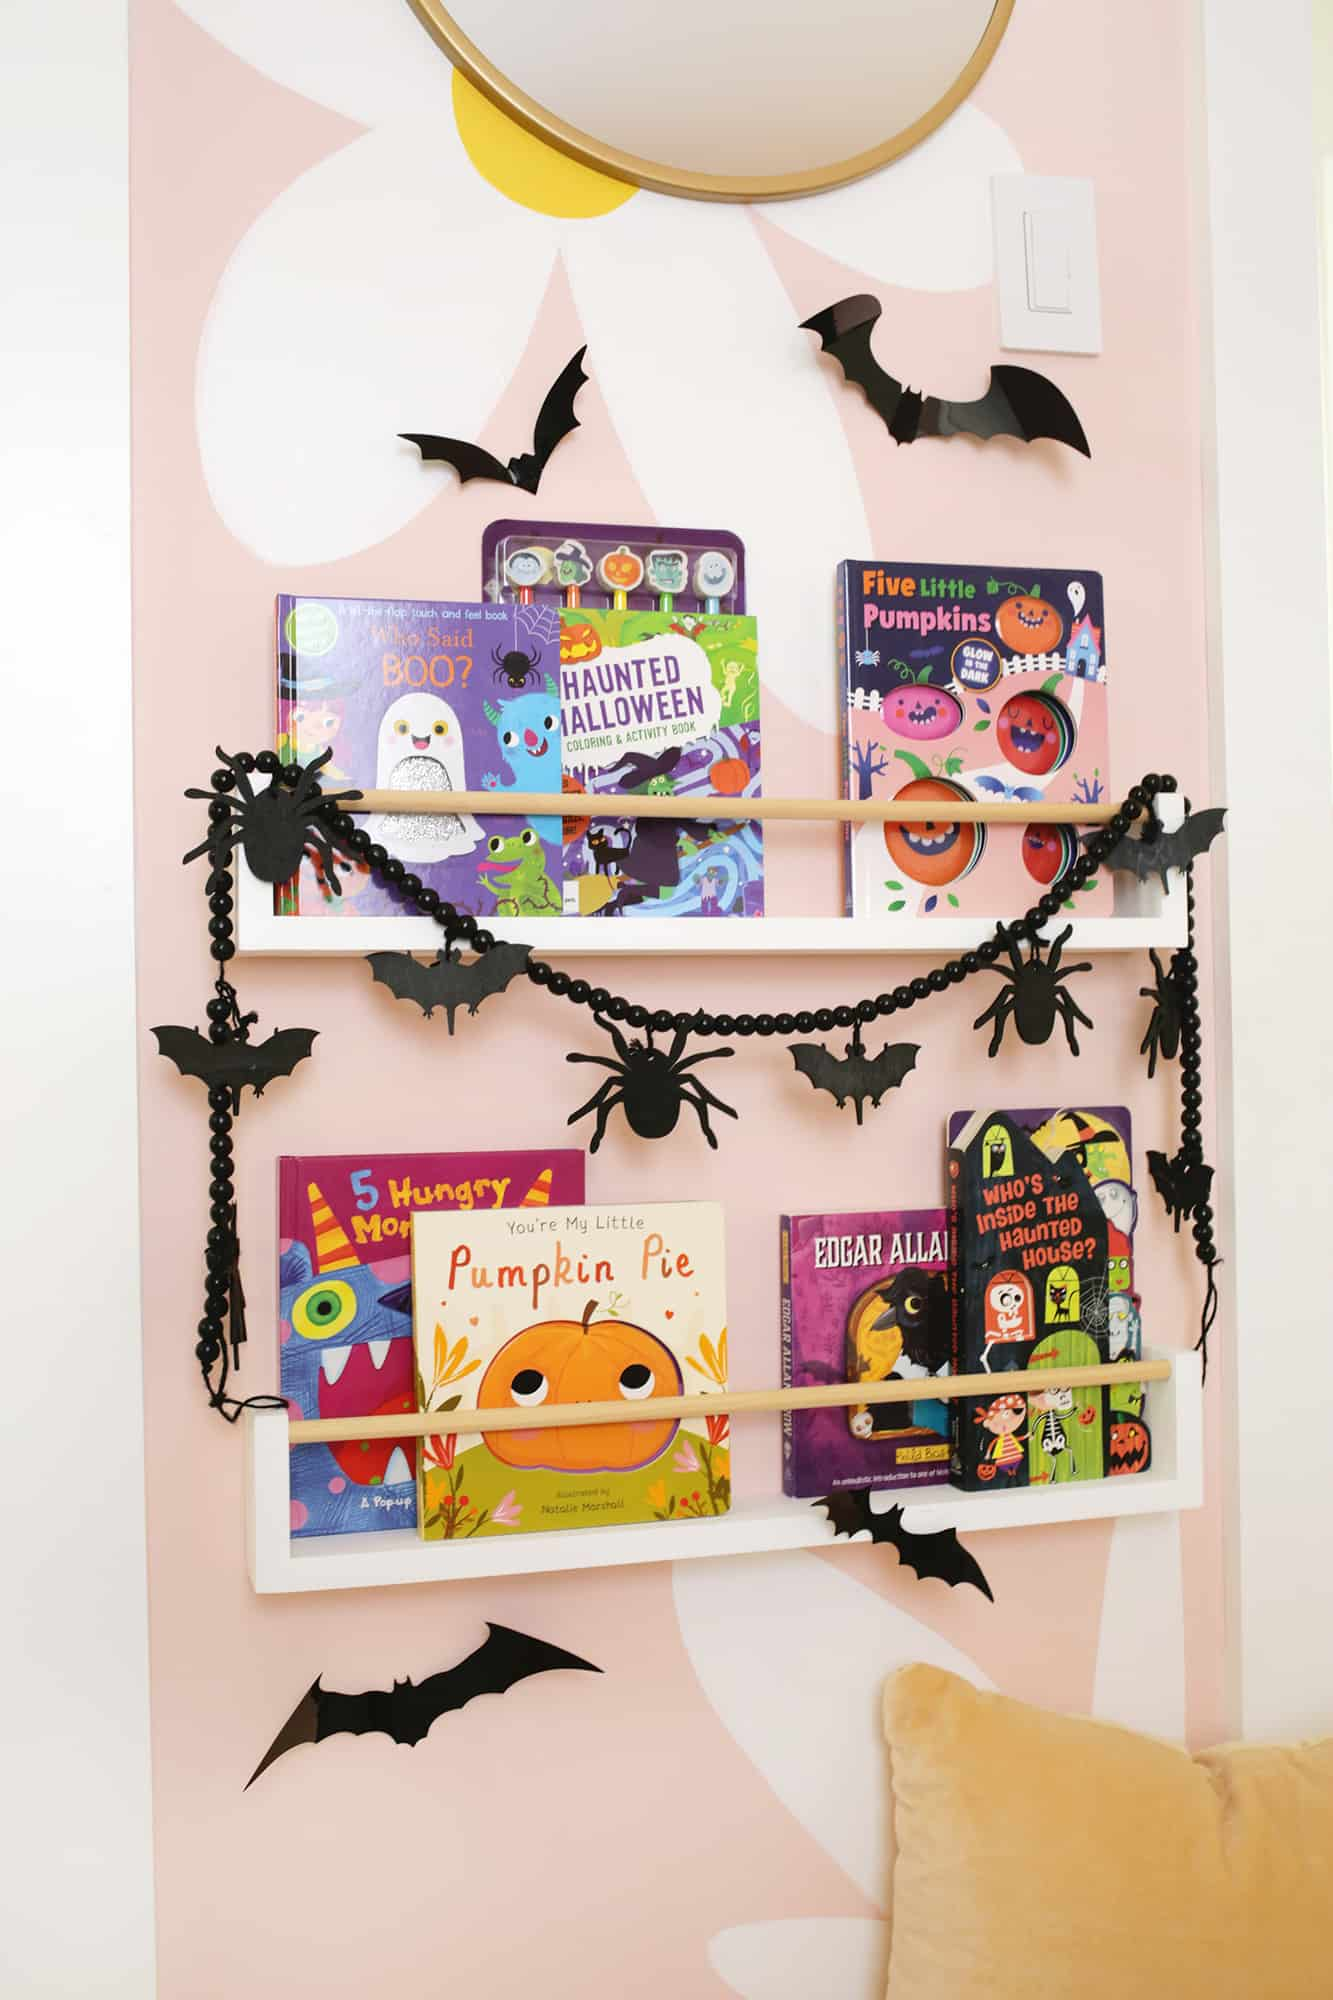 bookcase with halloween books on it and halloween decorations around it